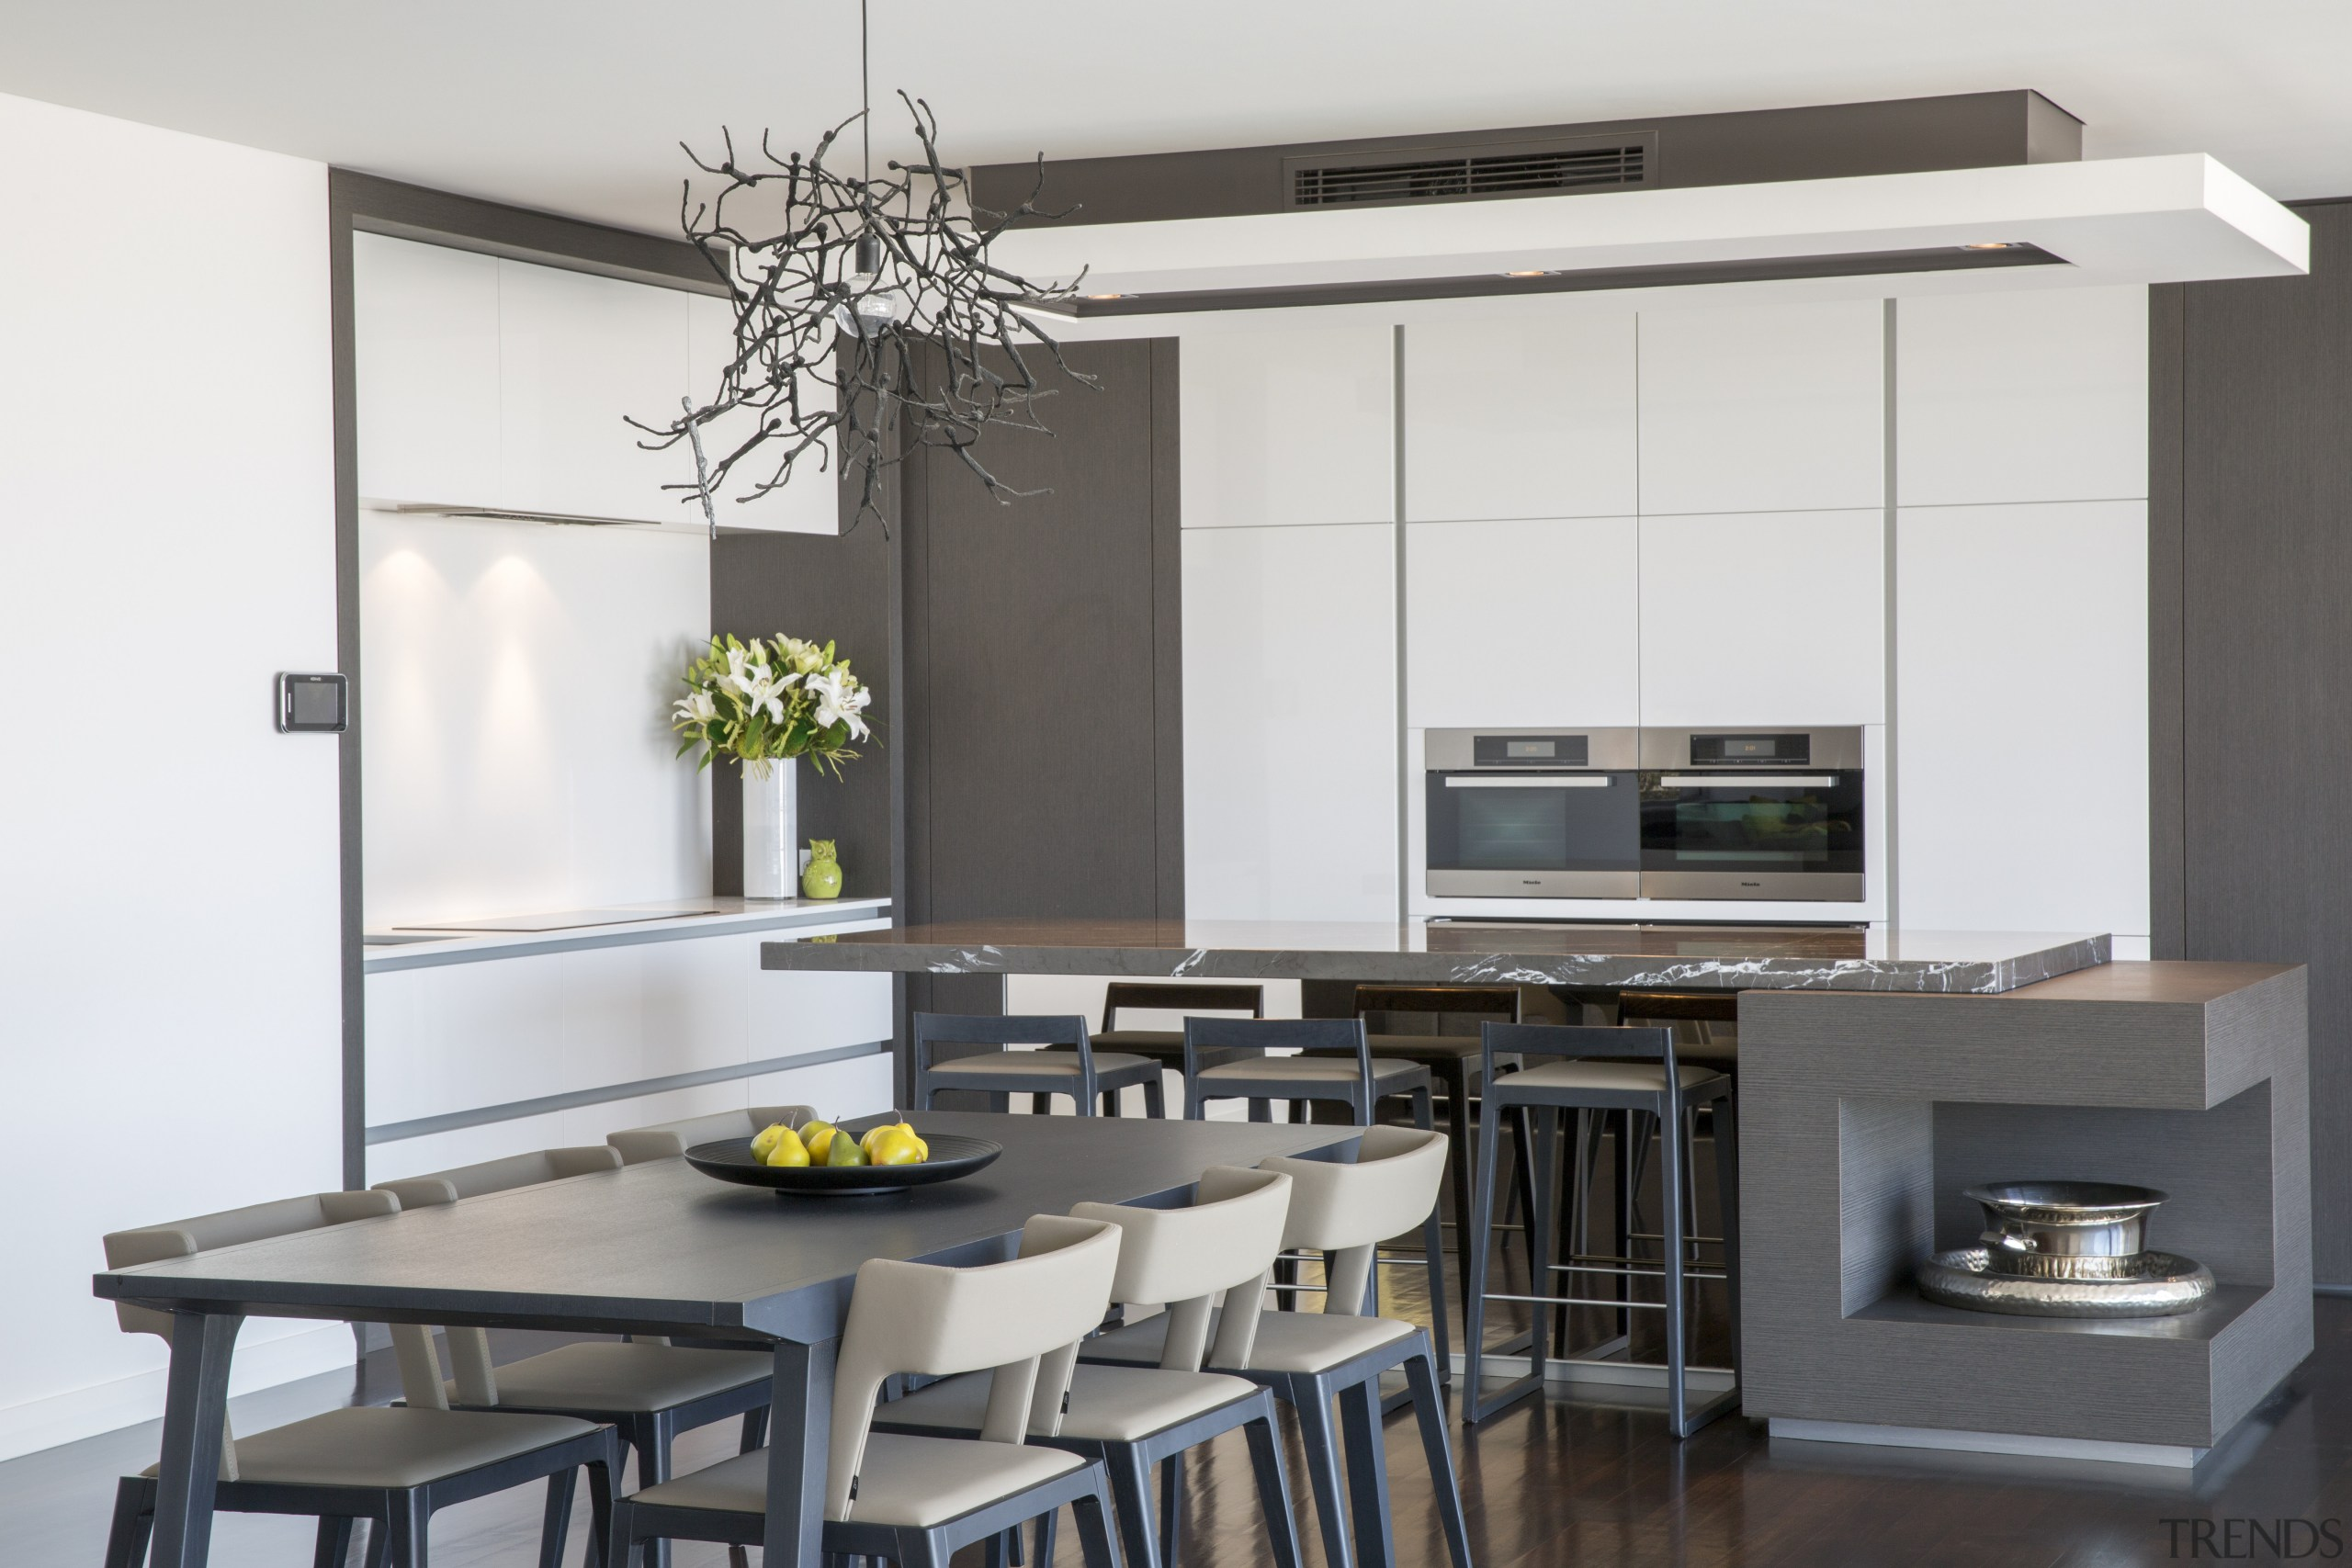 This kitchen in a new house was designed interior design, kitchen, table, white